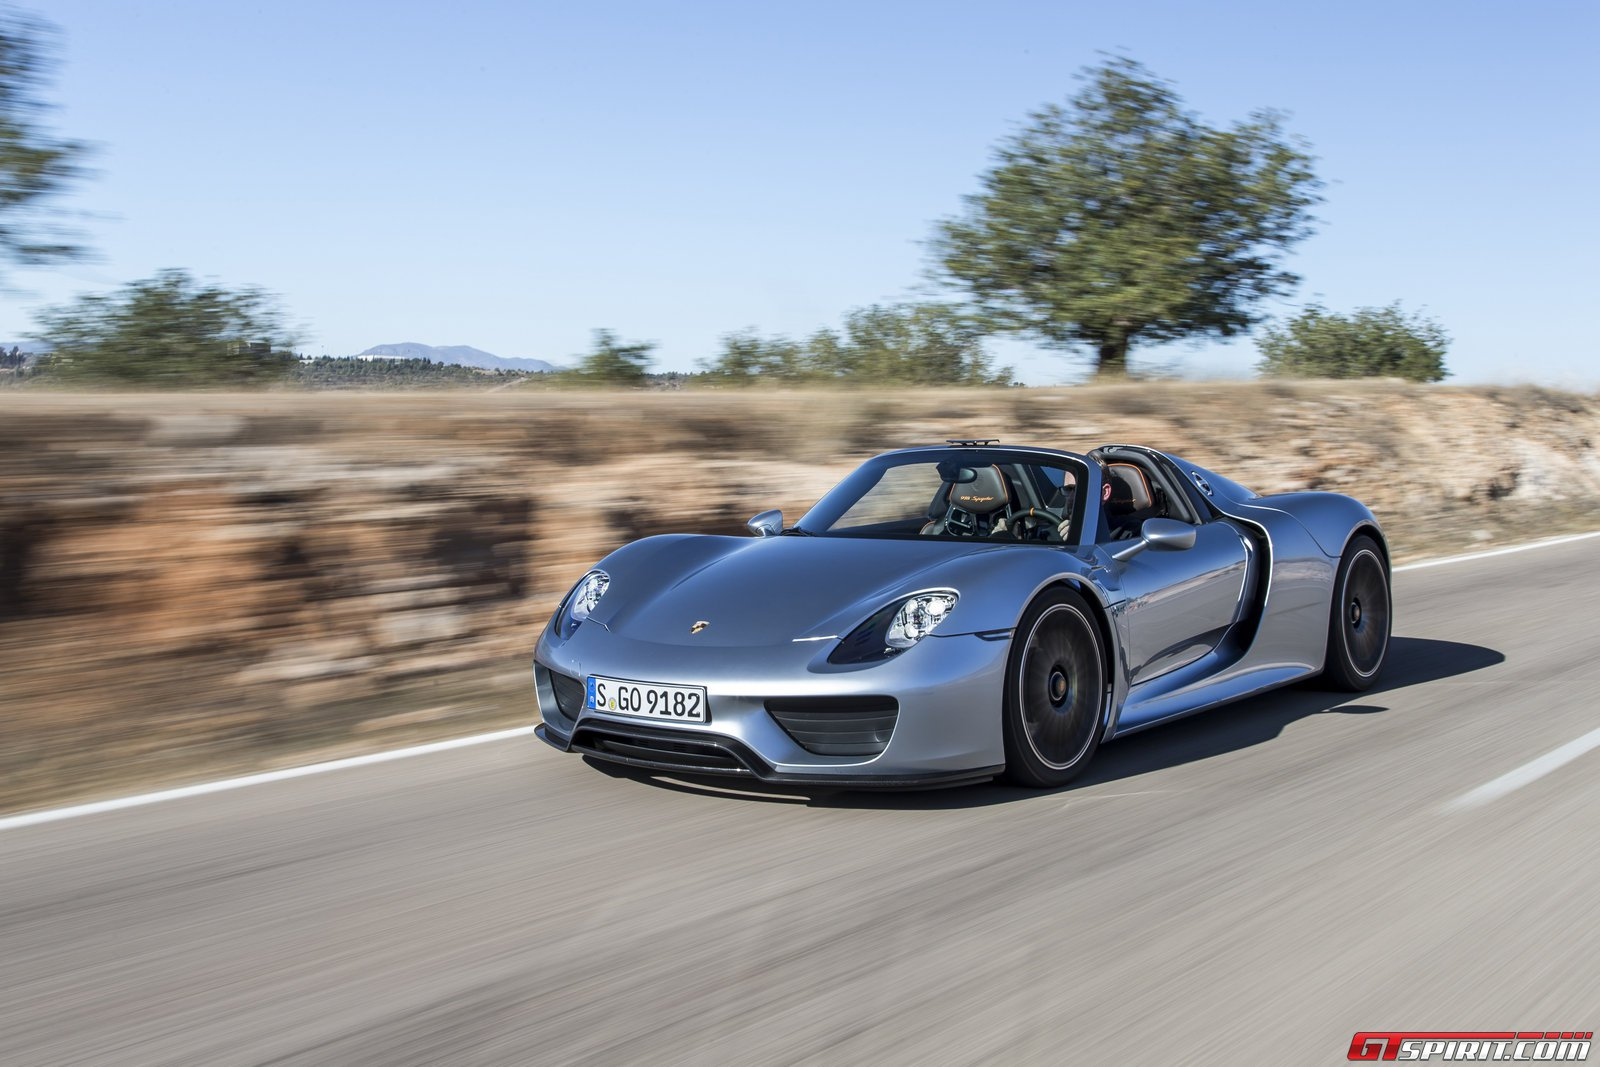 Gtspirit 2014 Porsche 918 Spyder Liquid Chrome Blue 0020